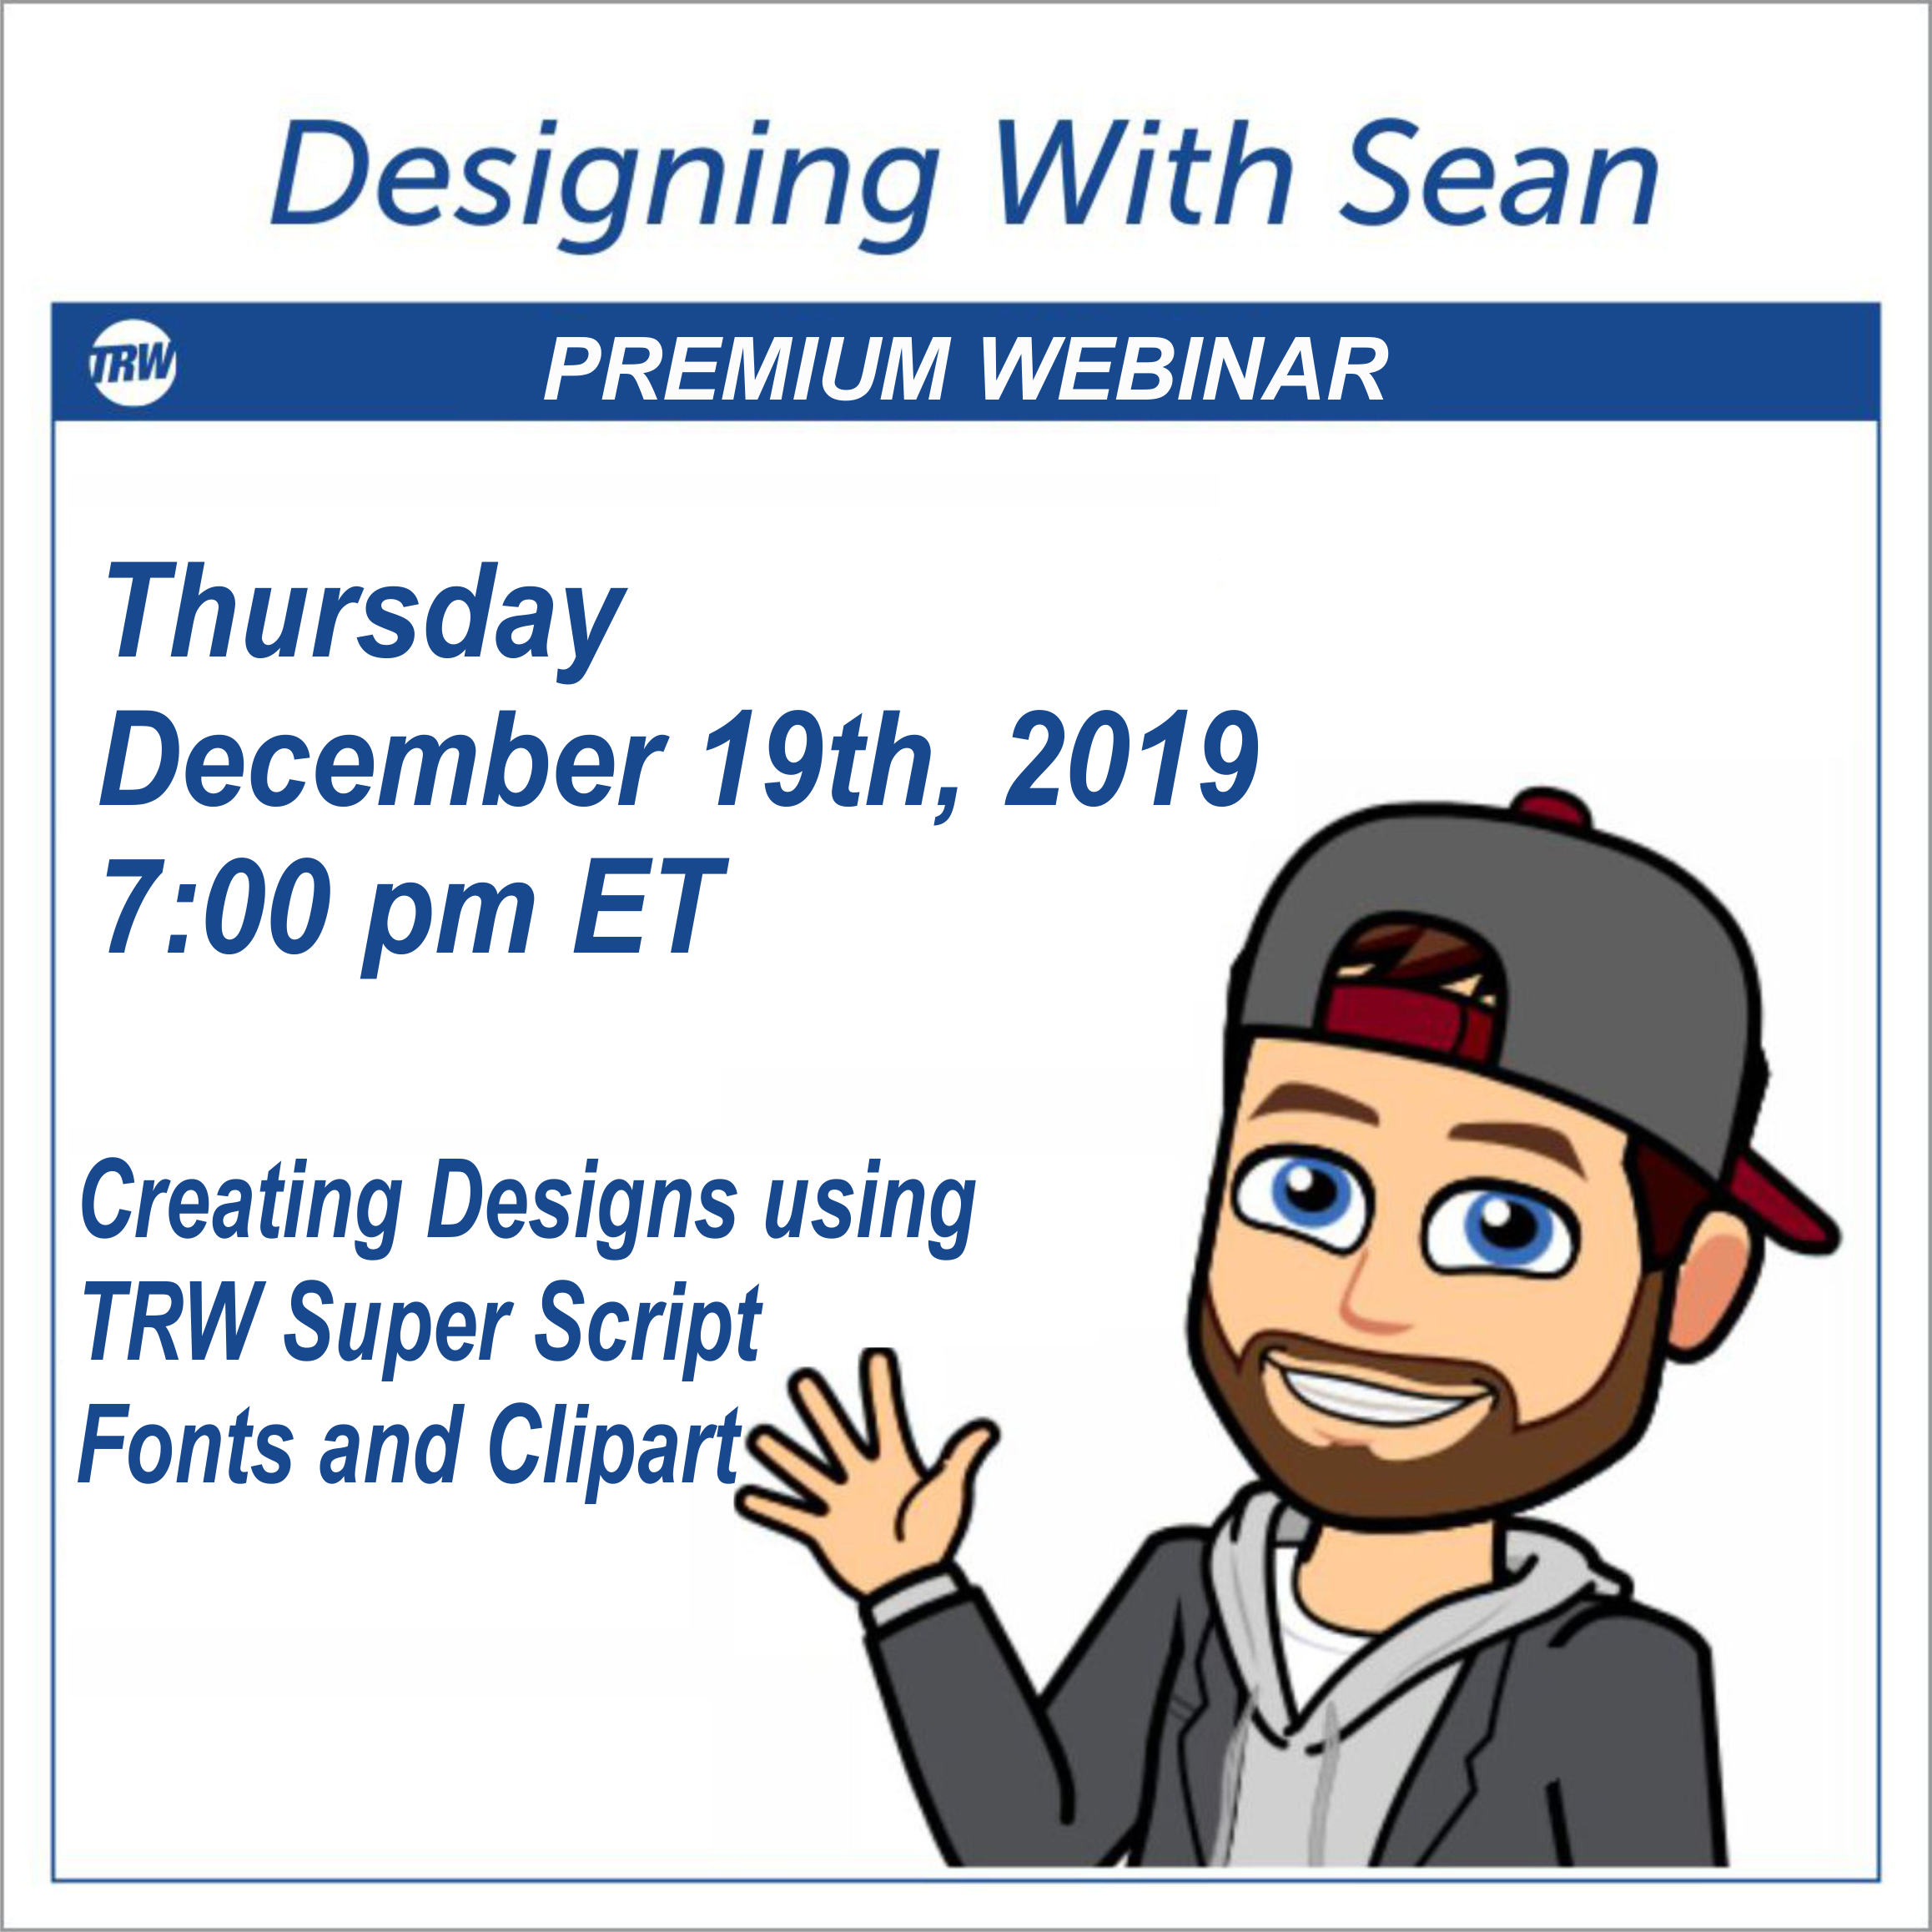 Designing with Sean | Creating Custom Designs Using Super Script Fonts and Clipart - December 19th, 2019